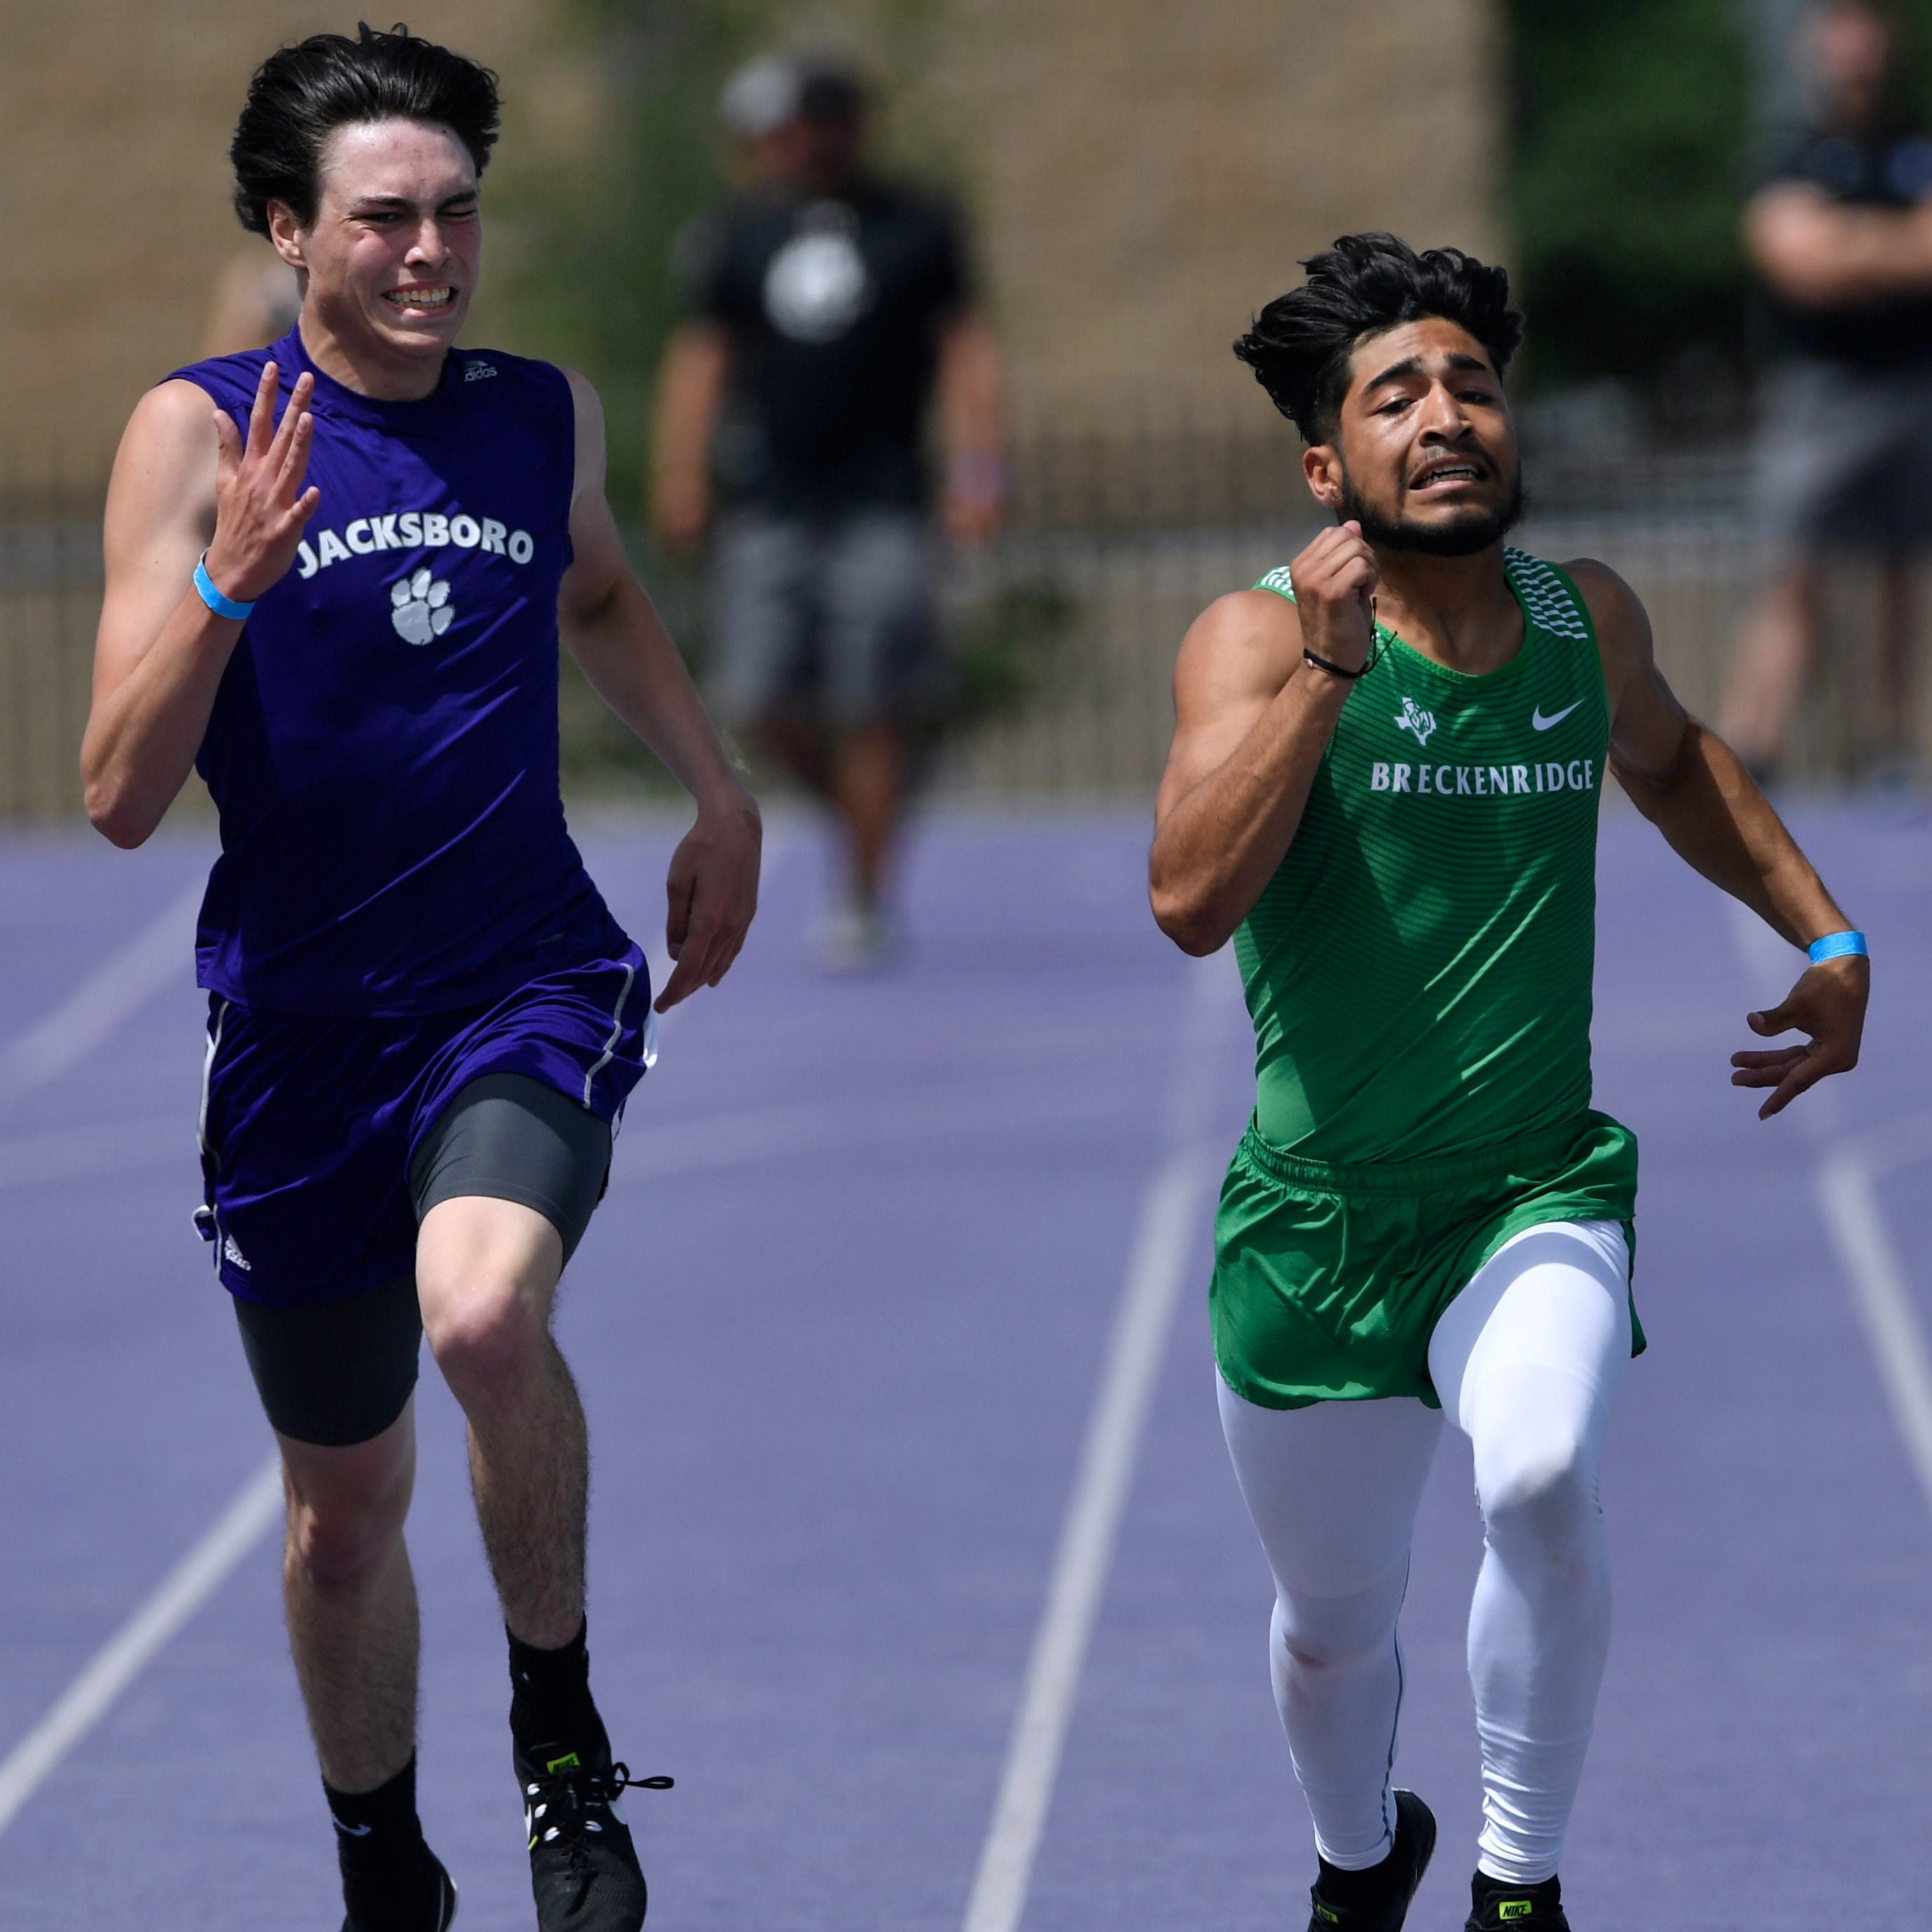 After two lost seasons, Breckenridge's Angel Ruiz overcomes injuries to make state meet